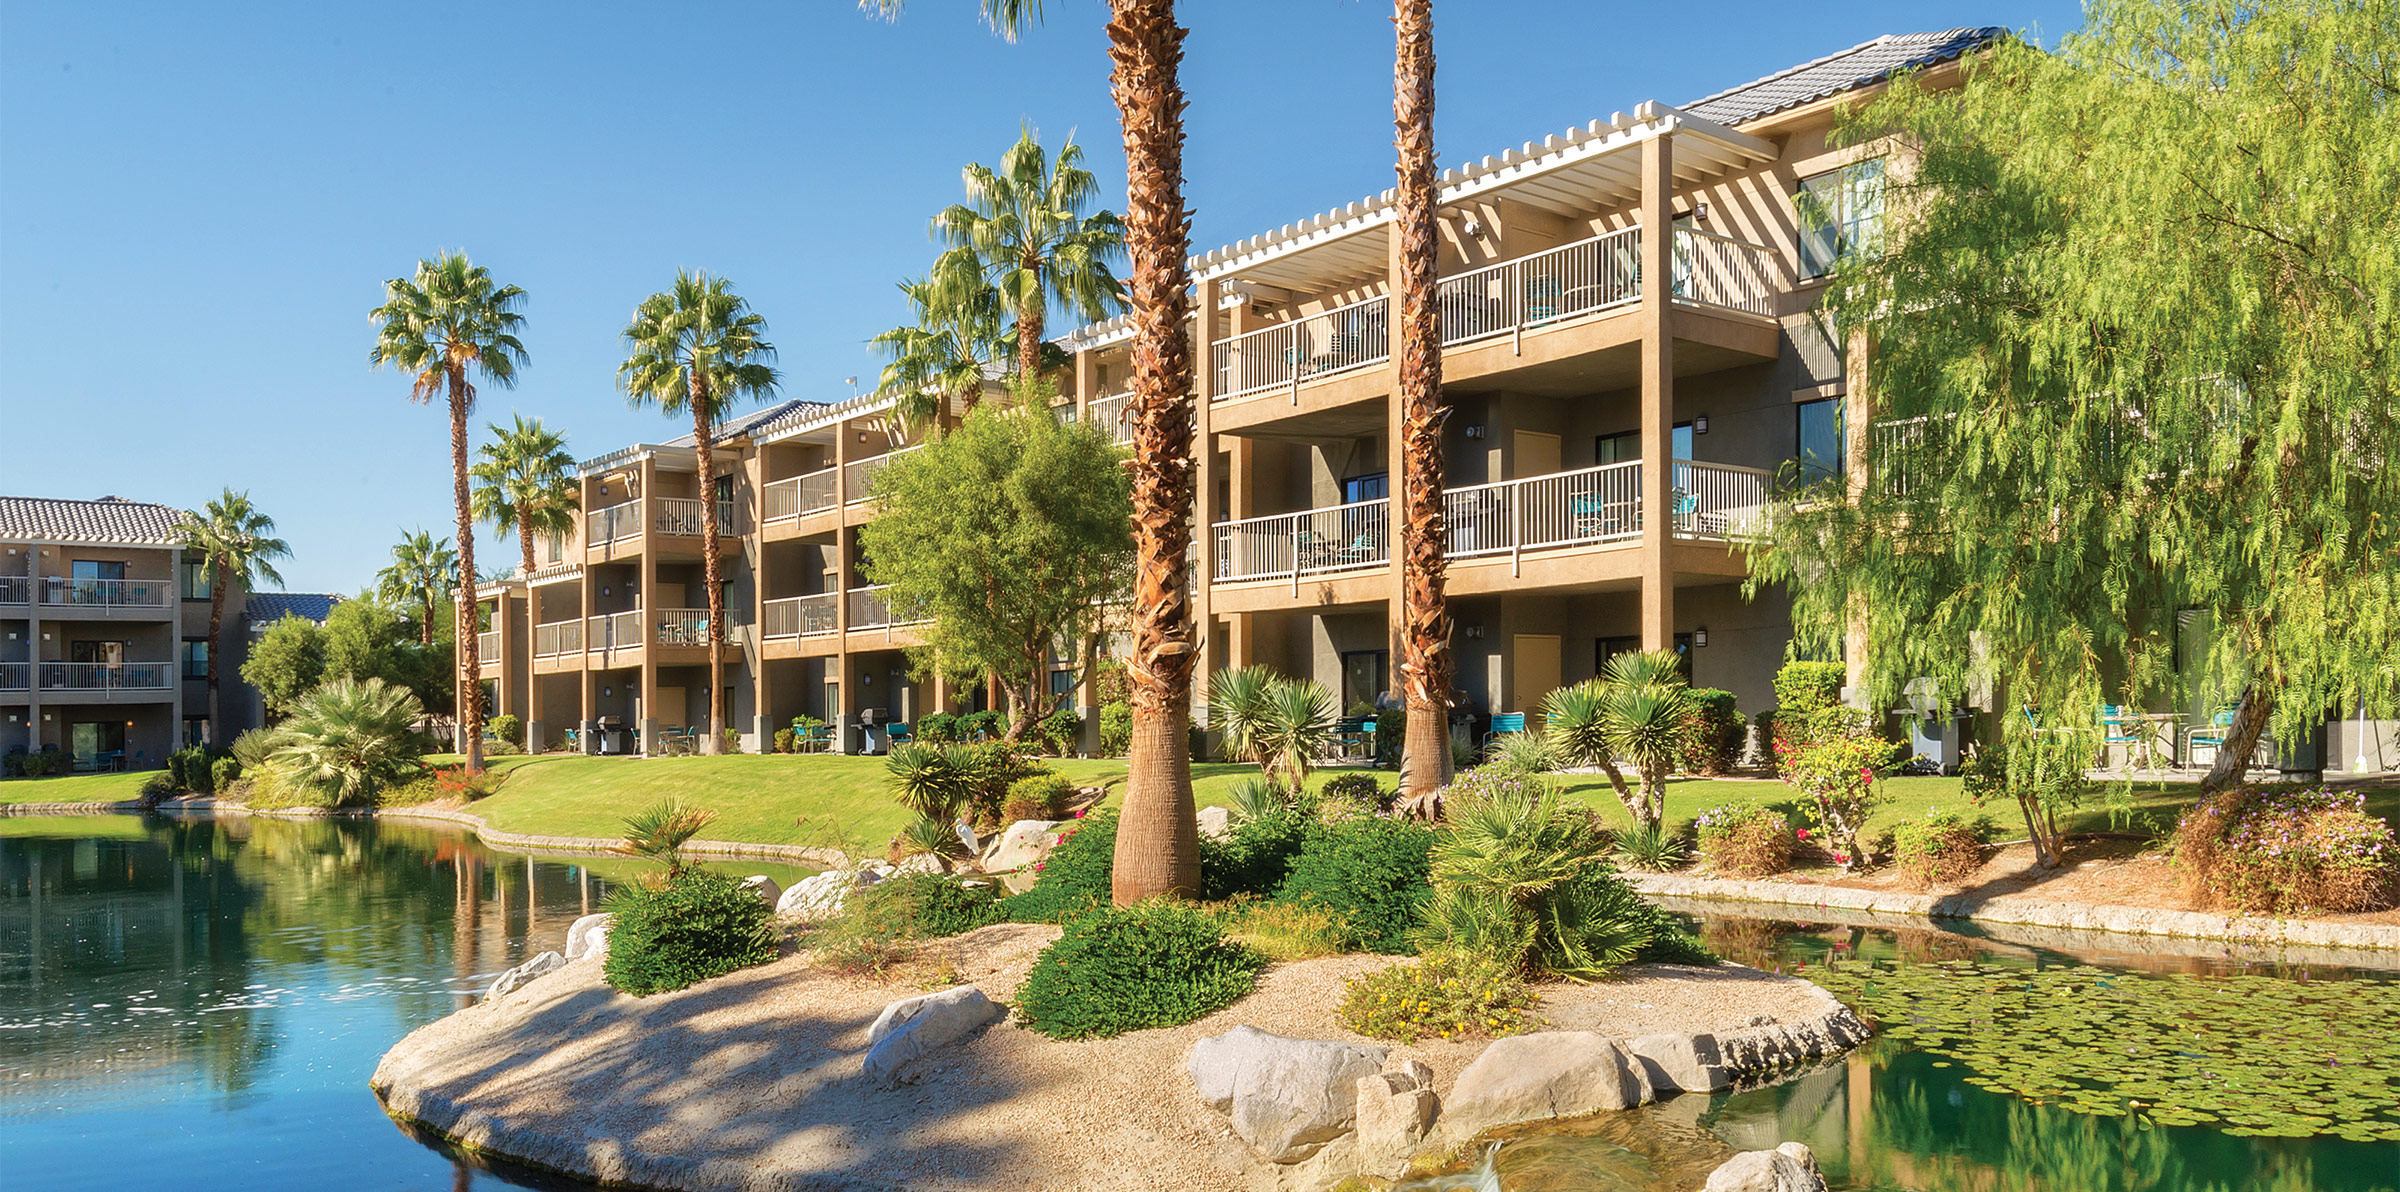 Apartment 3 Bedroom 2 Bath In Indio  CA   Palm Springs  5 miles from COACHELLA photo 20365739